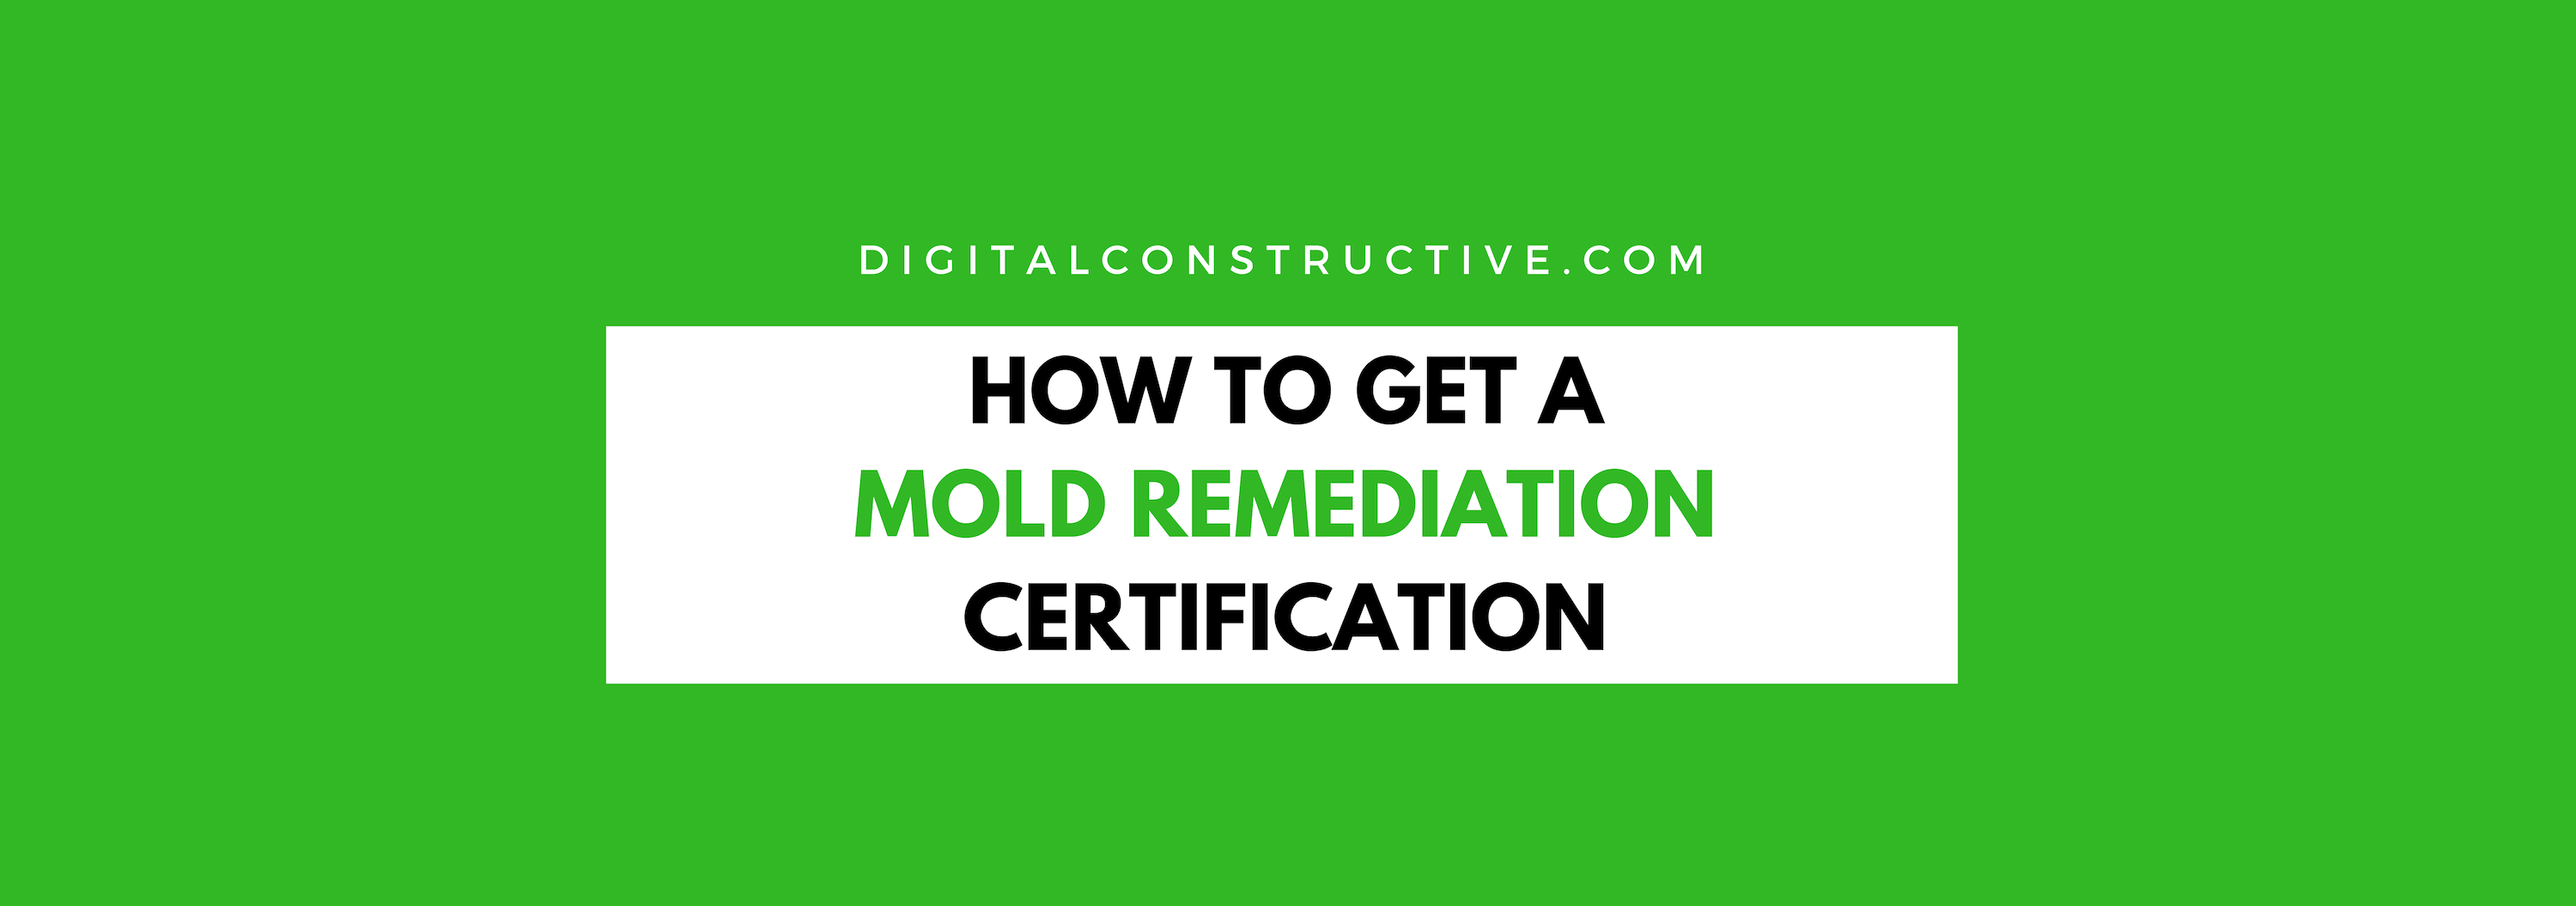 How To Get A Mold Remediation Certification Digital Constructive